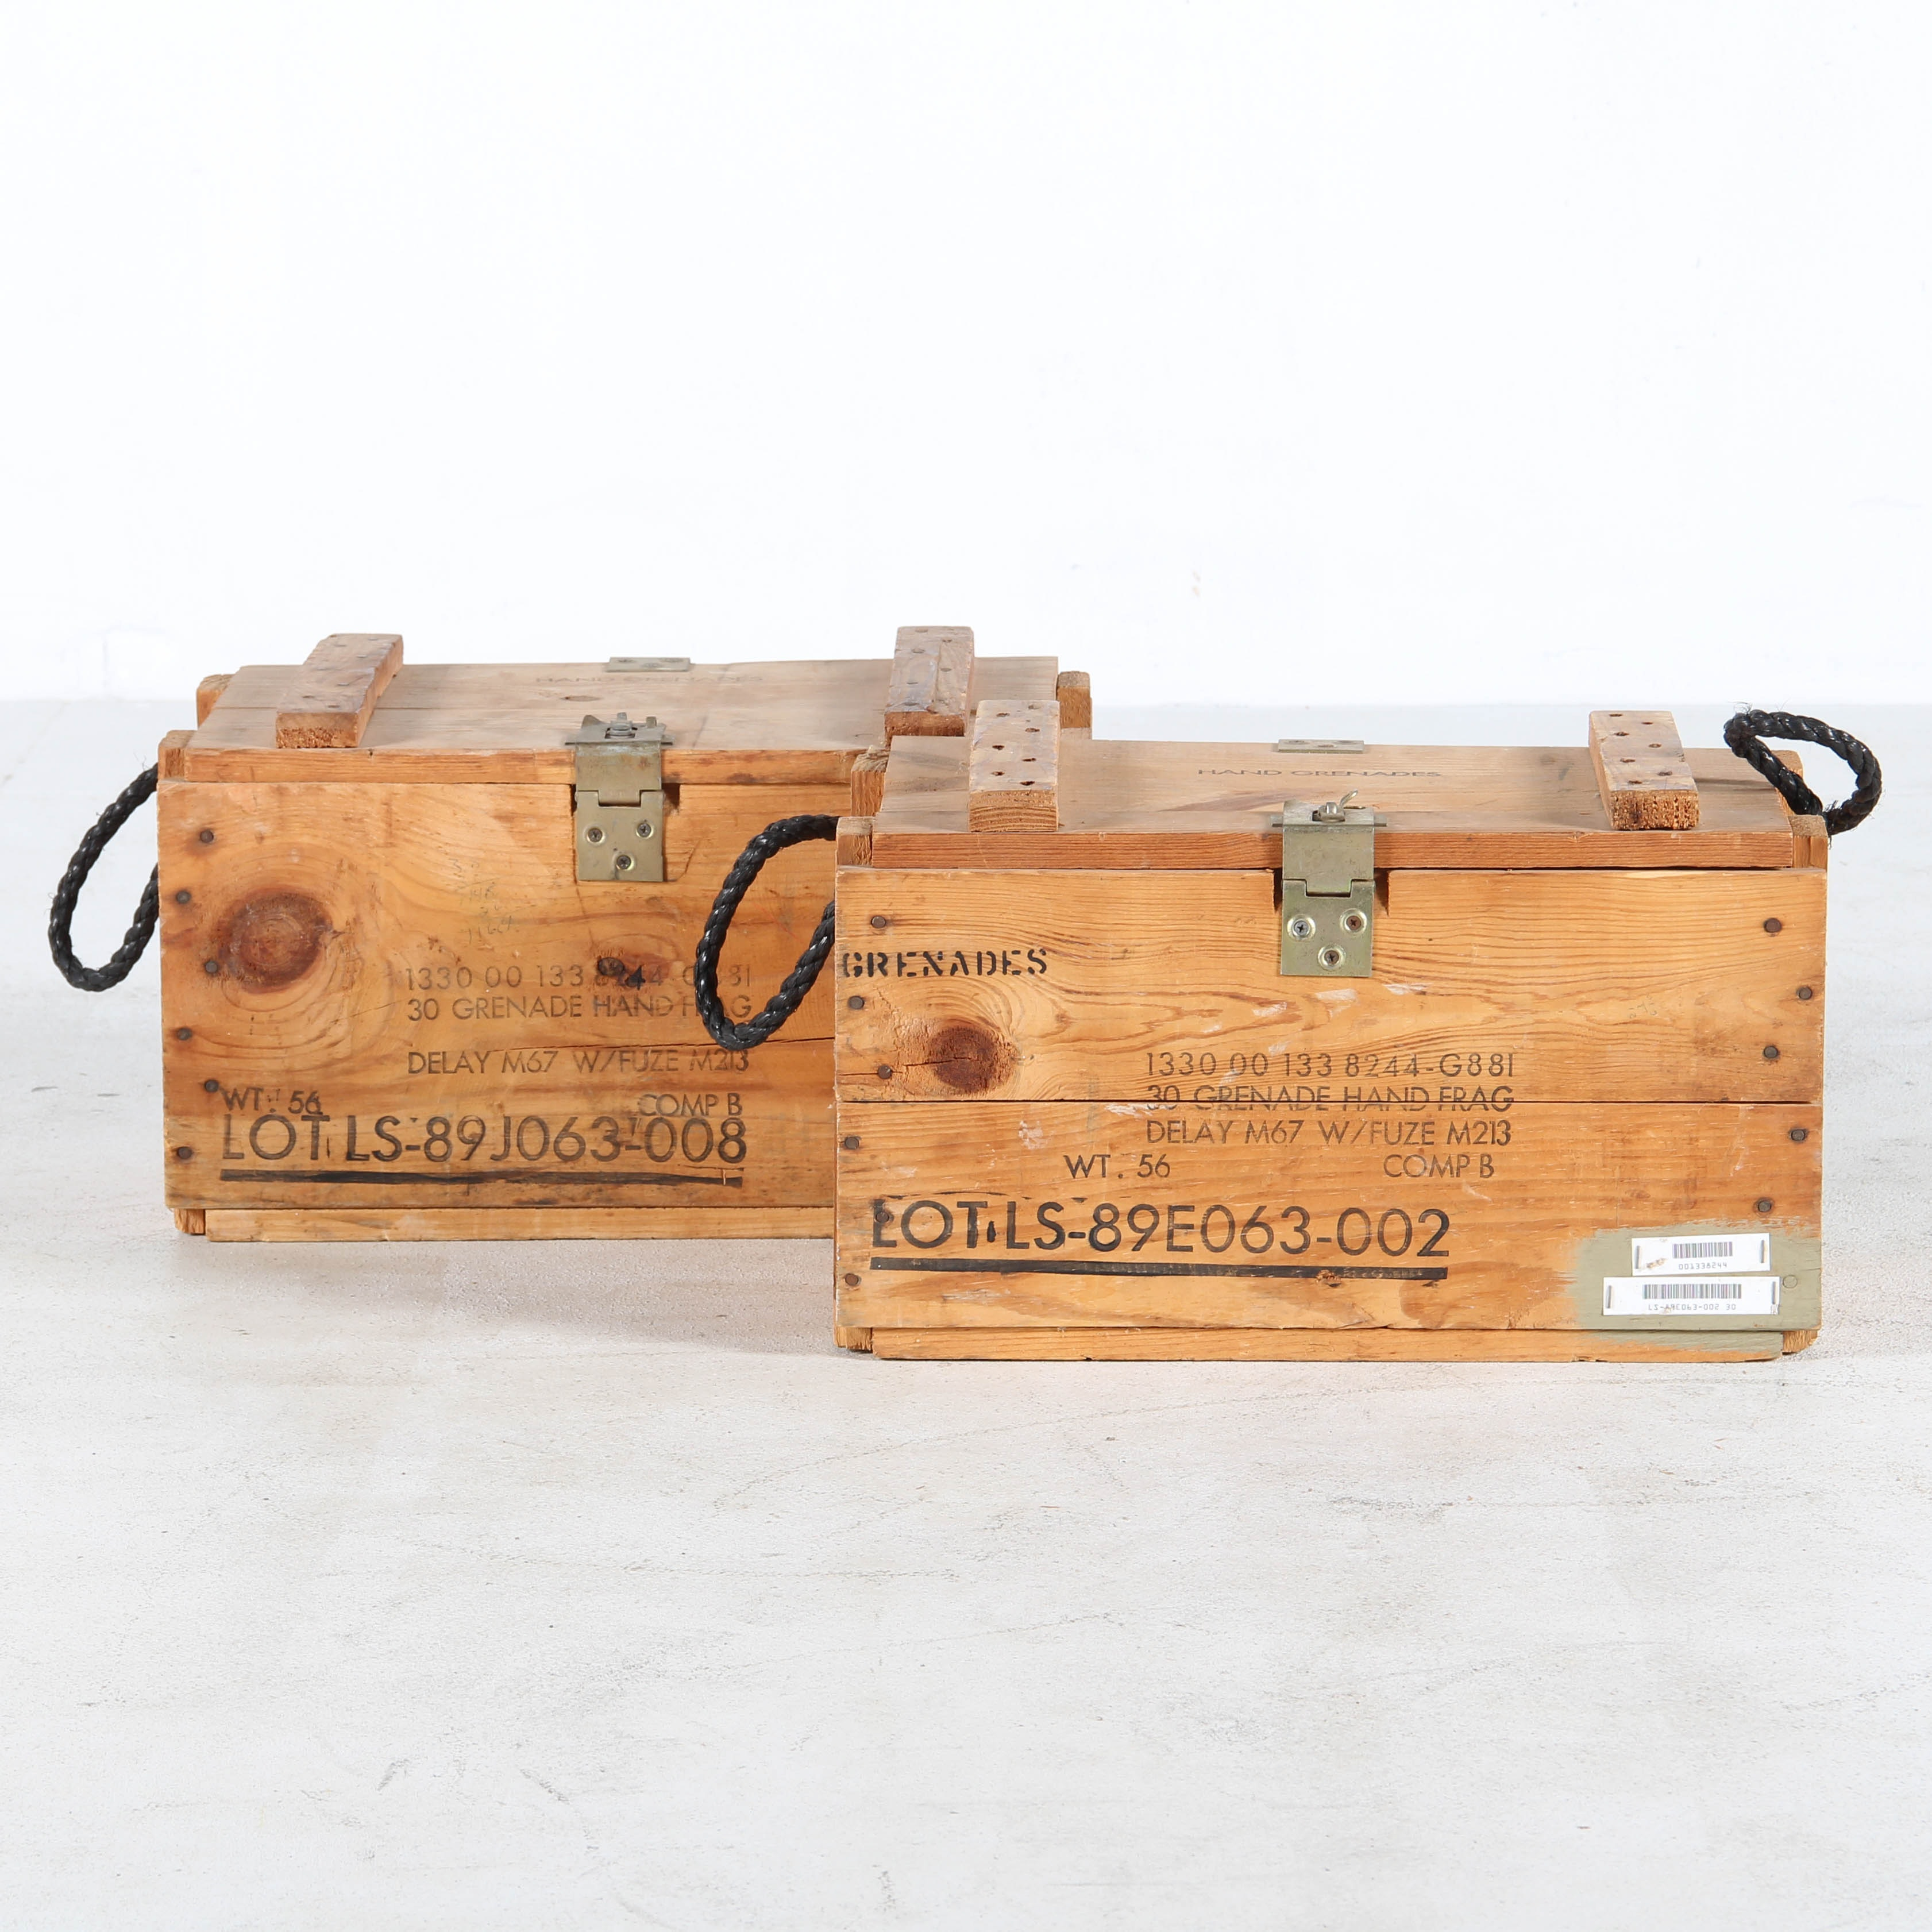 Ten Crates Of Grenades Pictures To Pin On Pinterest